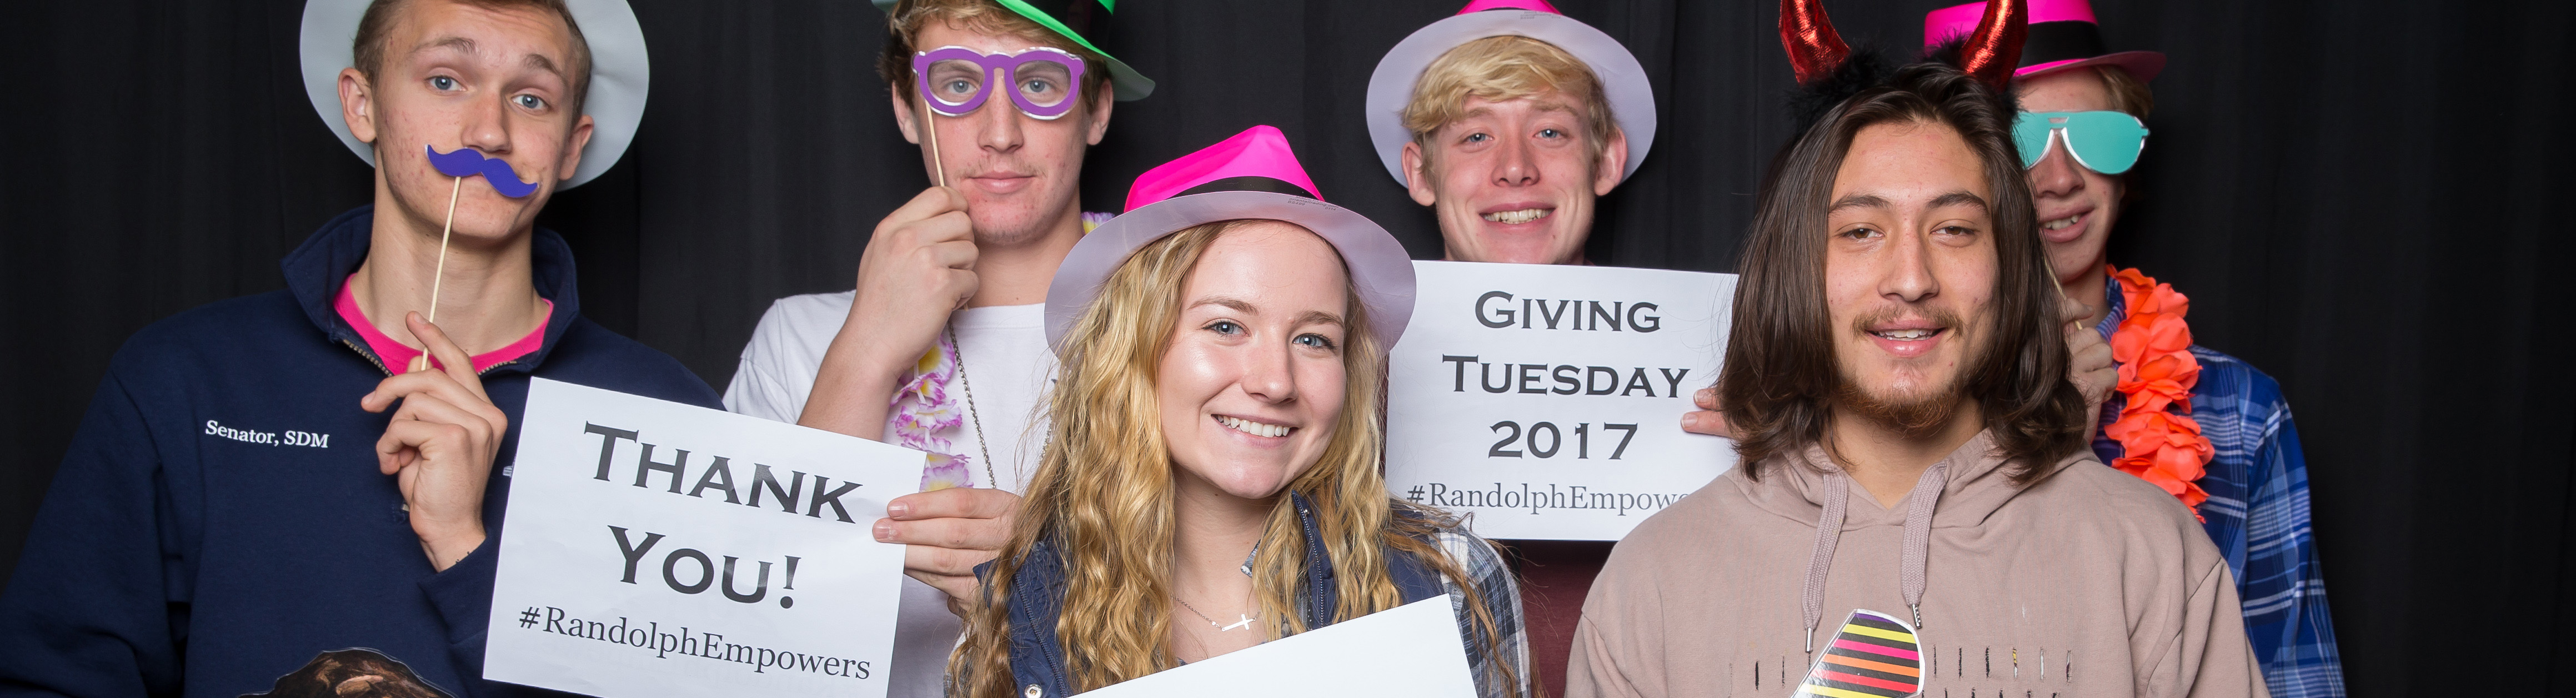 Photo from giving tuesday